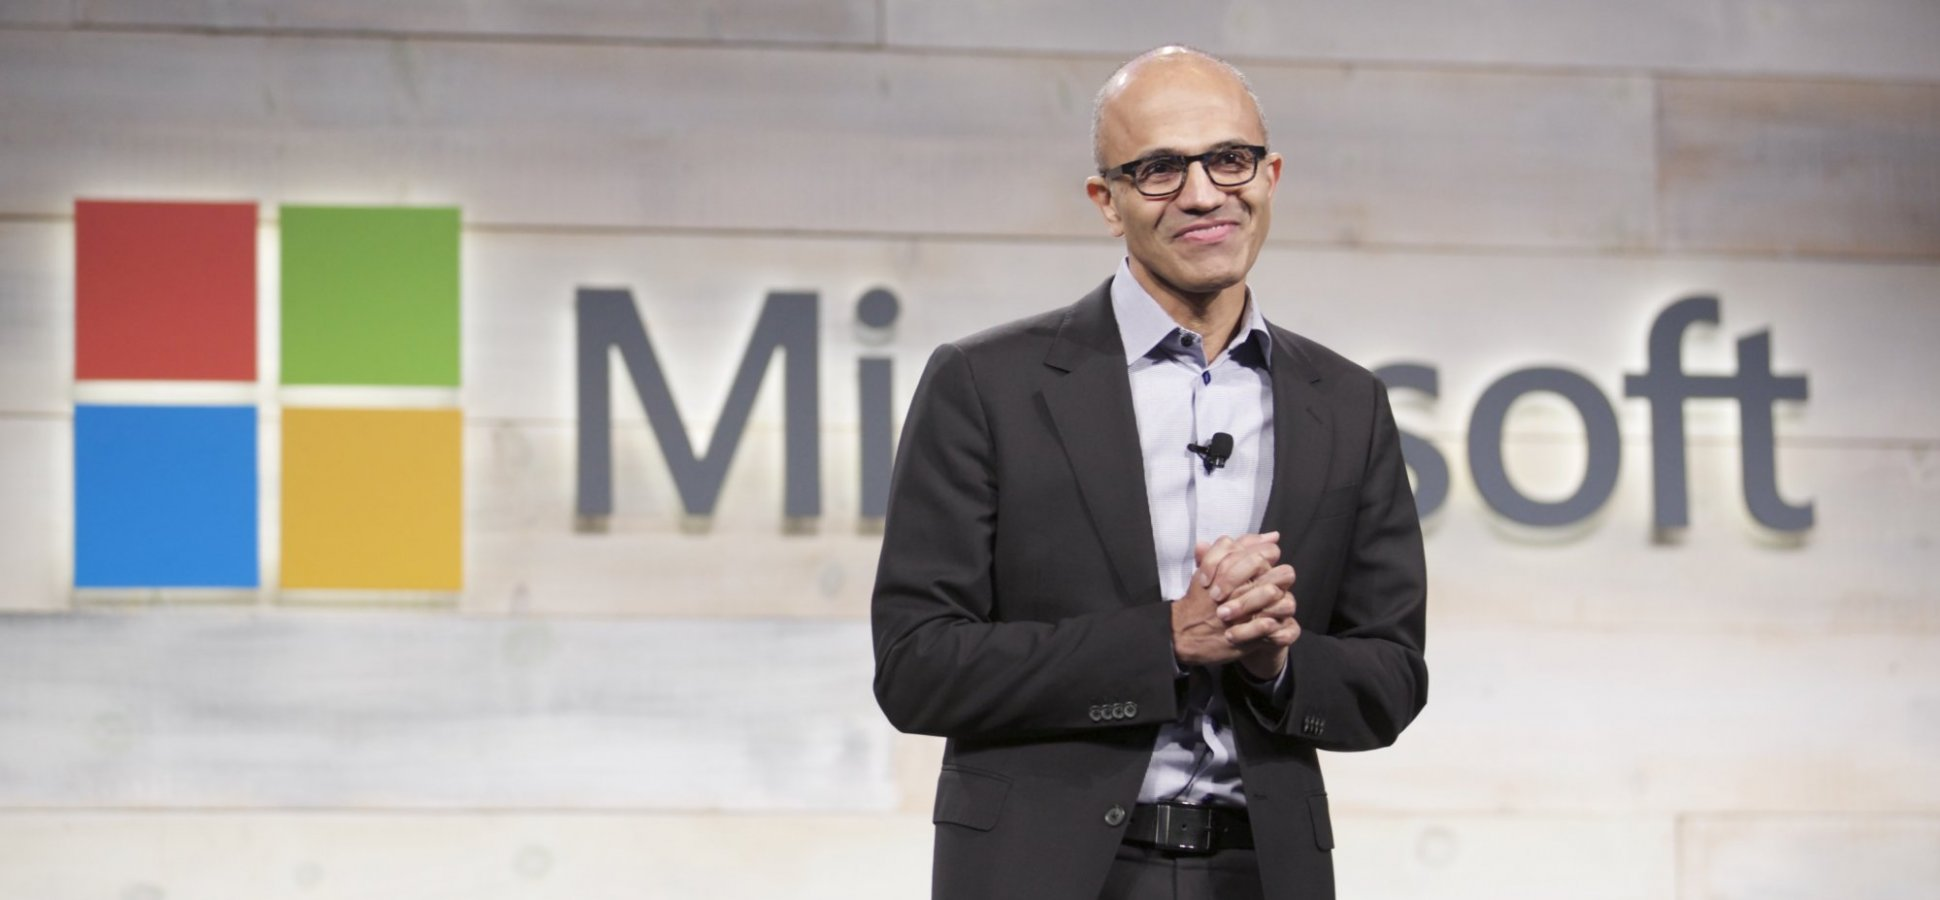 Microsoft Is Spending $500 Million to Help Build Affordable Housing. Here's Why That's Smart